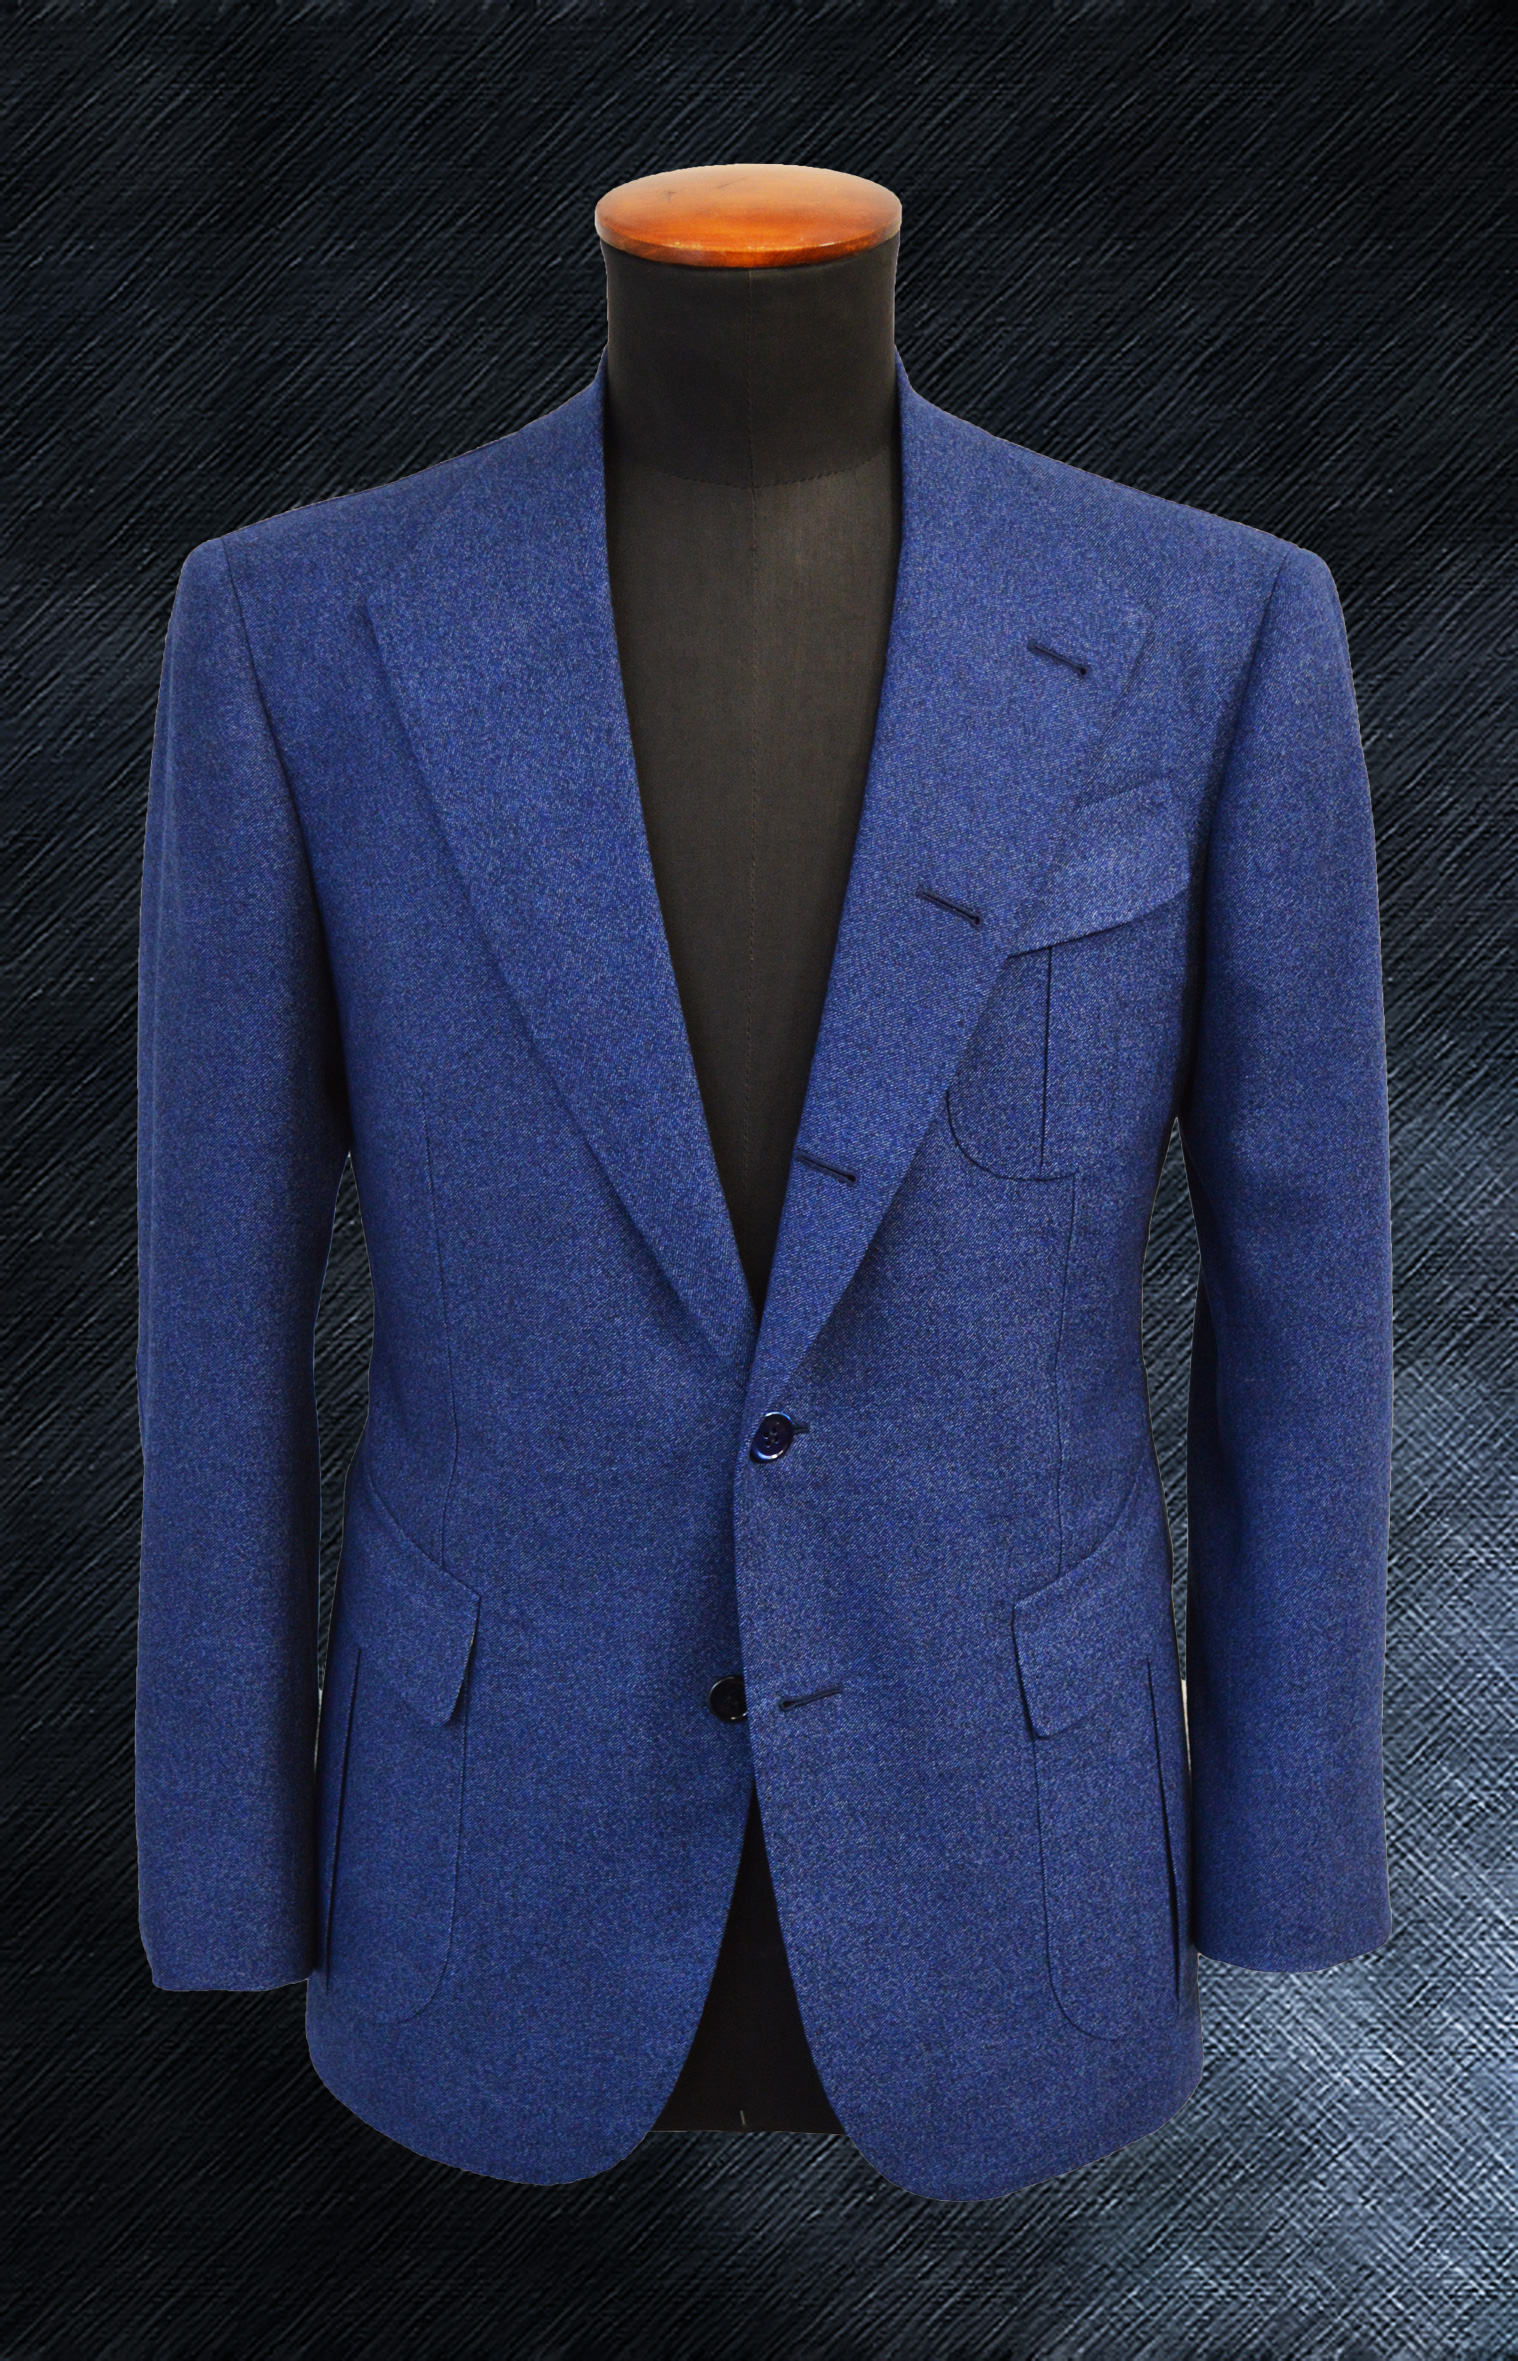 Lorenzo Cifonelli designs with Drago a one-of-kind bespoke jacket